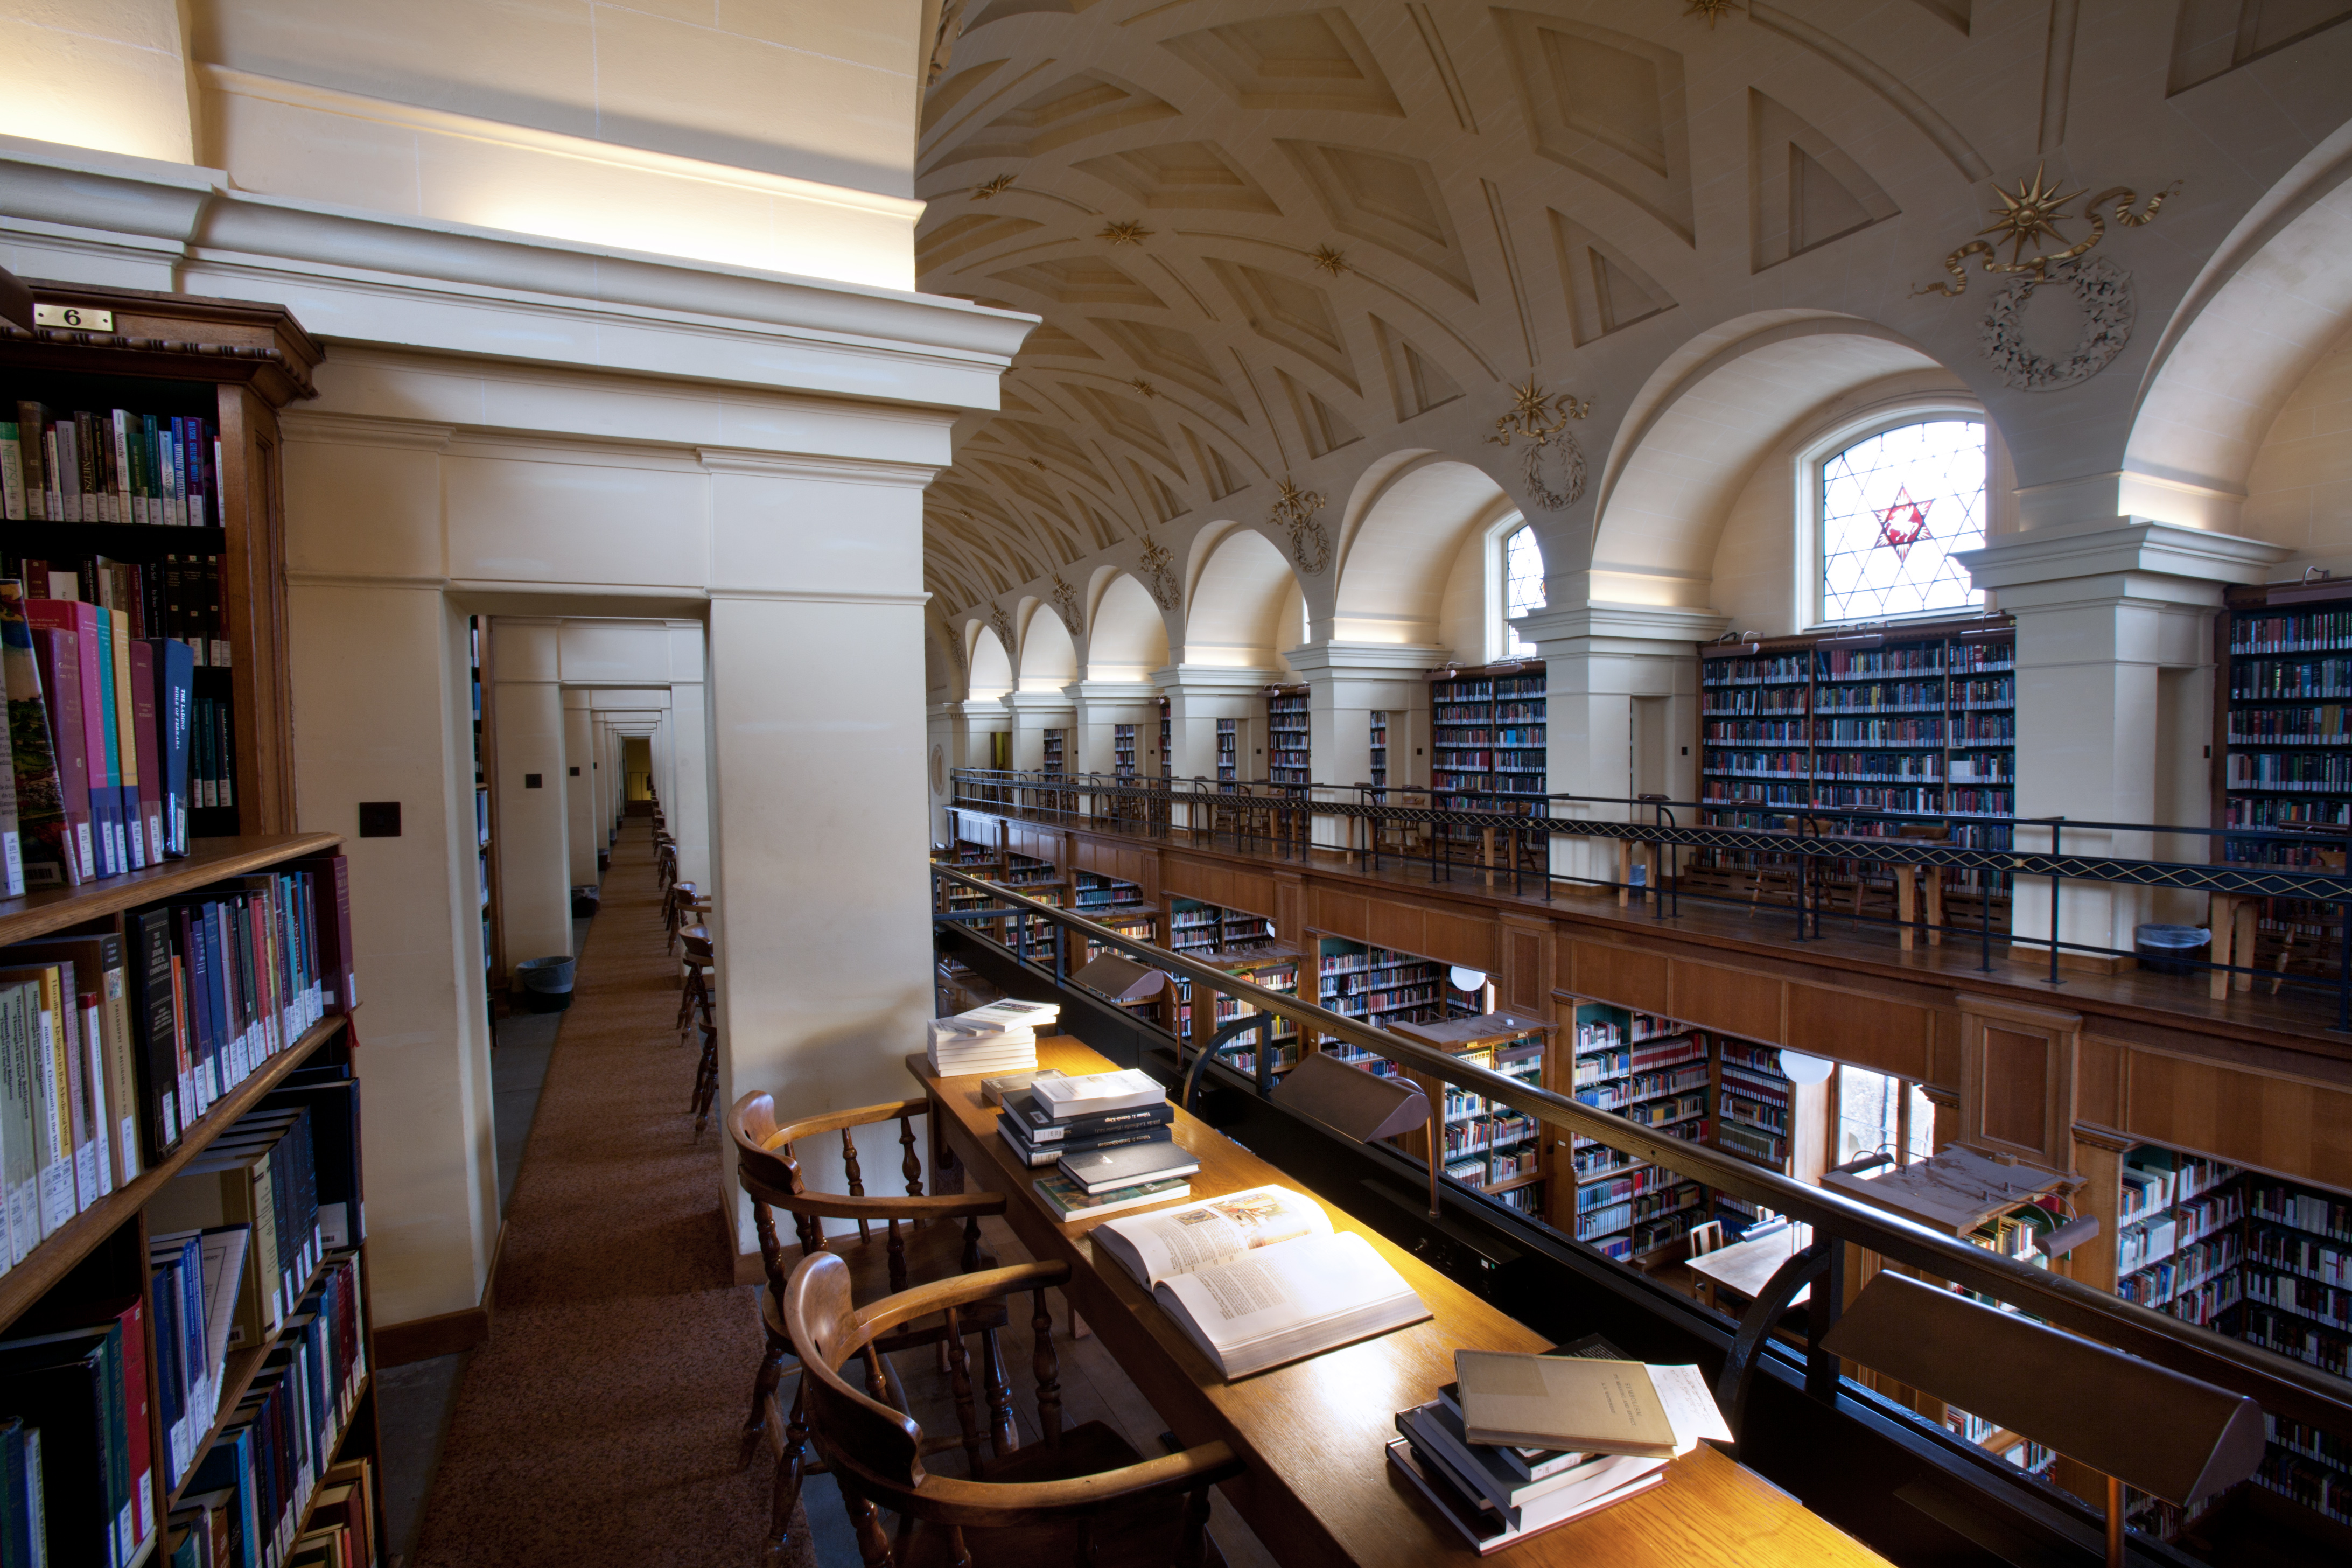 Senate House Reading Rooms